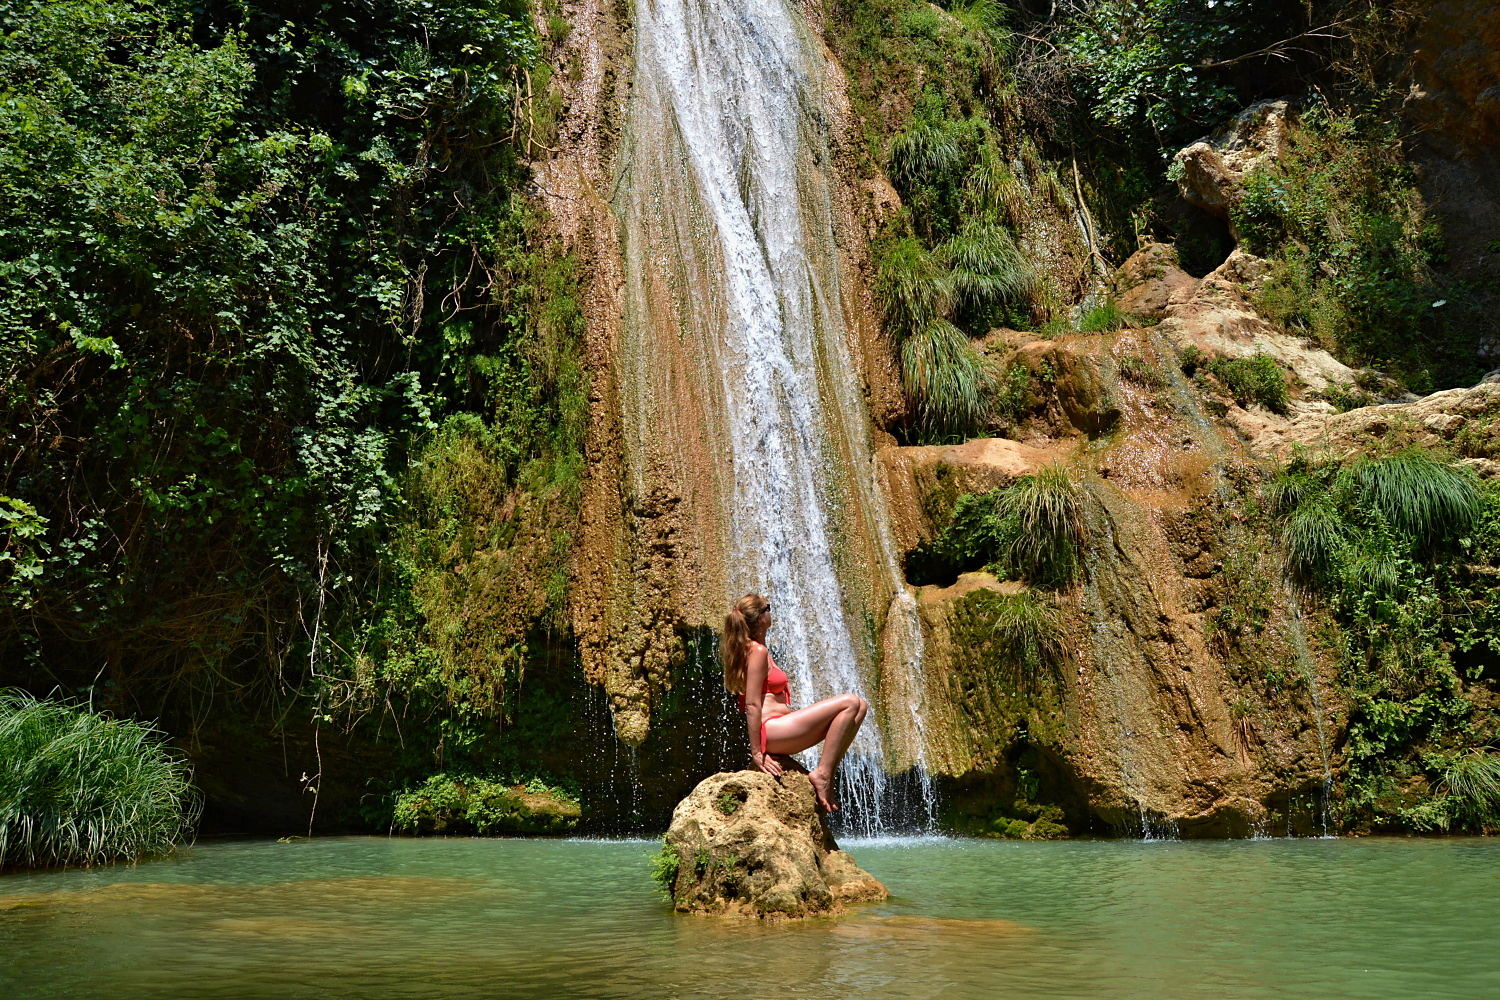 Kalamaris Waterfall, Messinia, Greeec